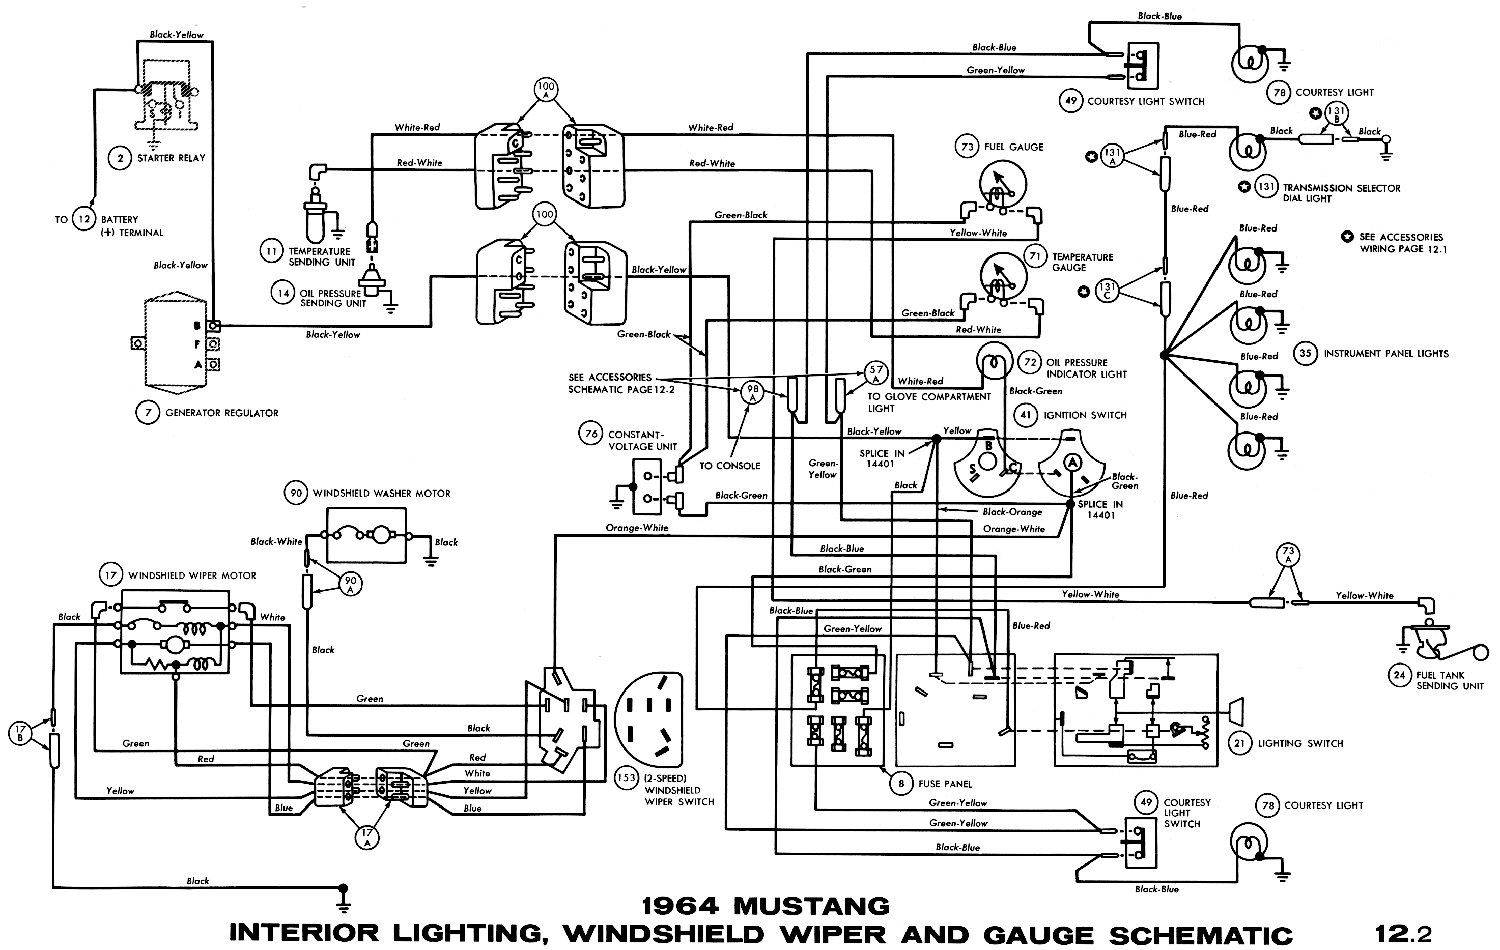 Ford F650 Wiring Diagram Wipers Great Design Of Schematic 65 Mustang Wiper Detailed Schematics Rh Jppastryarts Com Truck Diagrams 2005